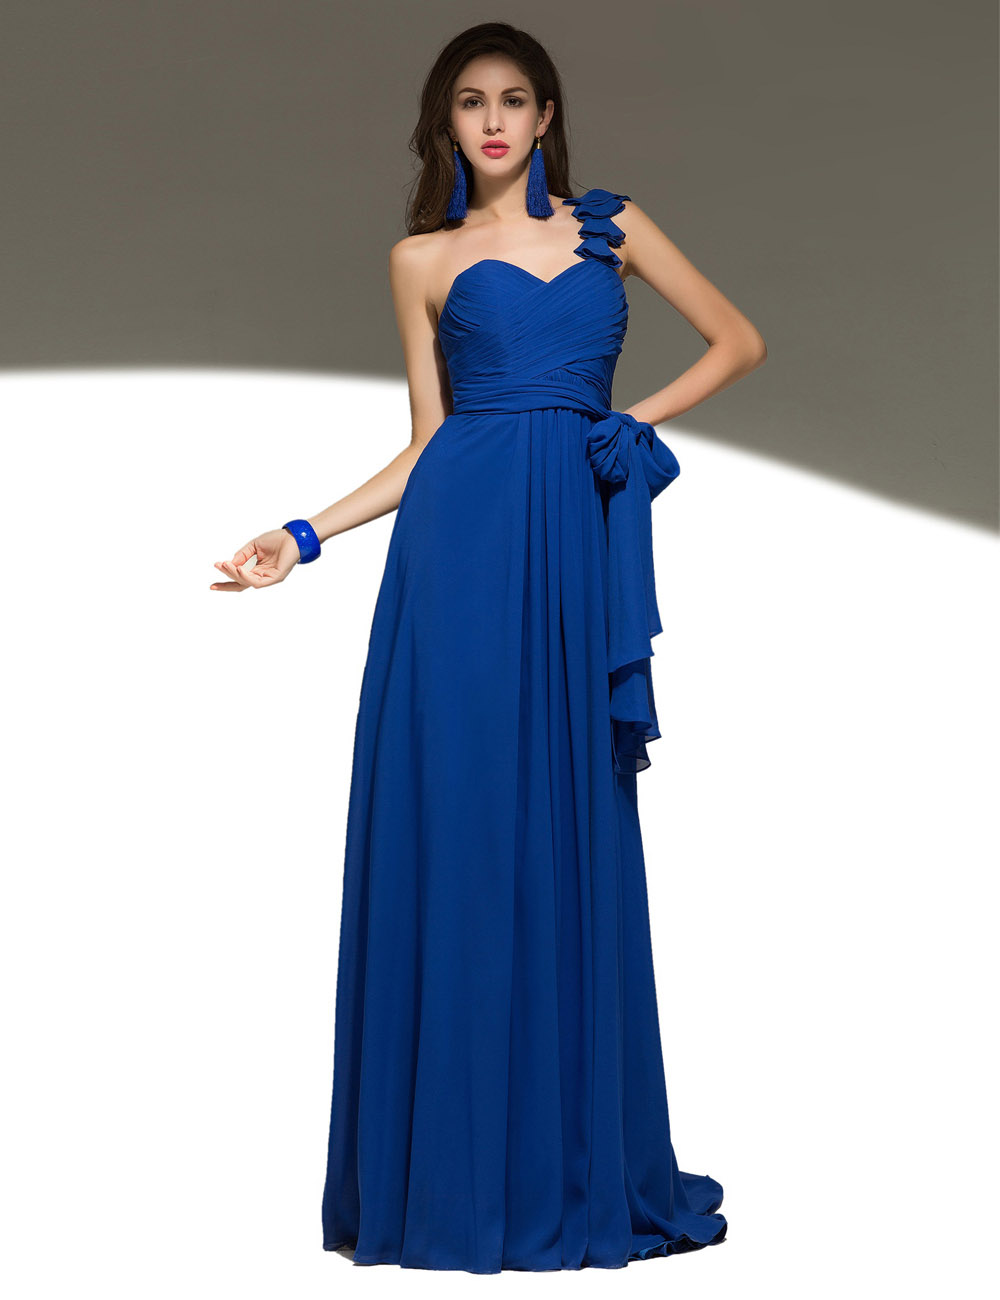 A-line Spaghetti Straps Asymmetrical Tulle Evening Dress